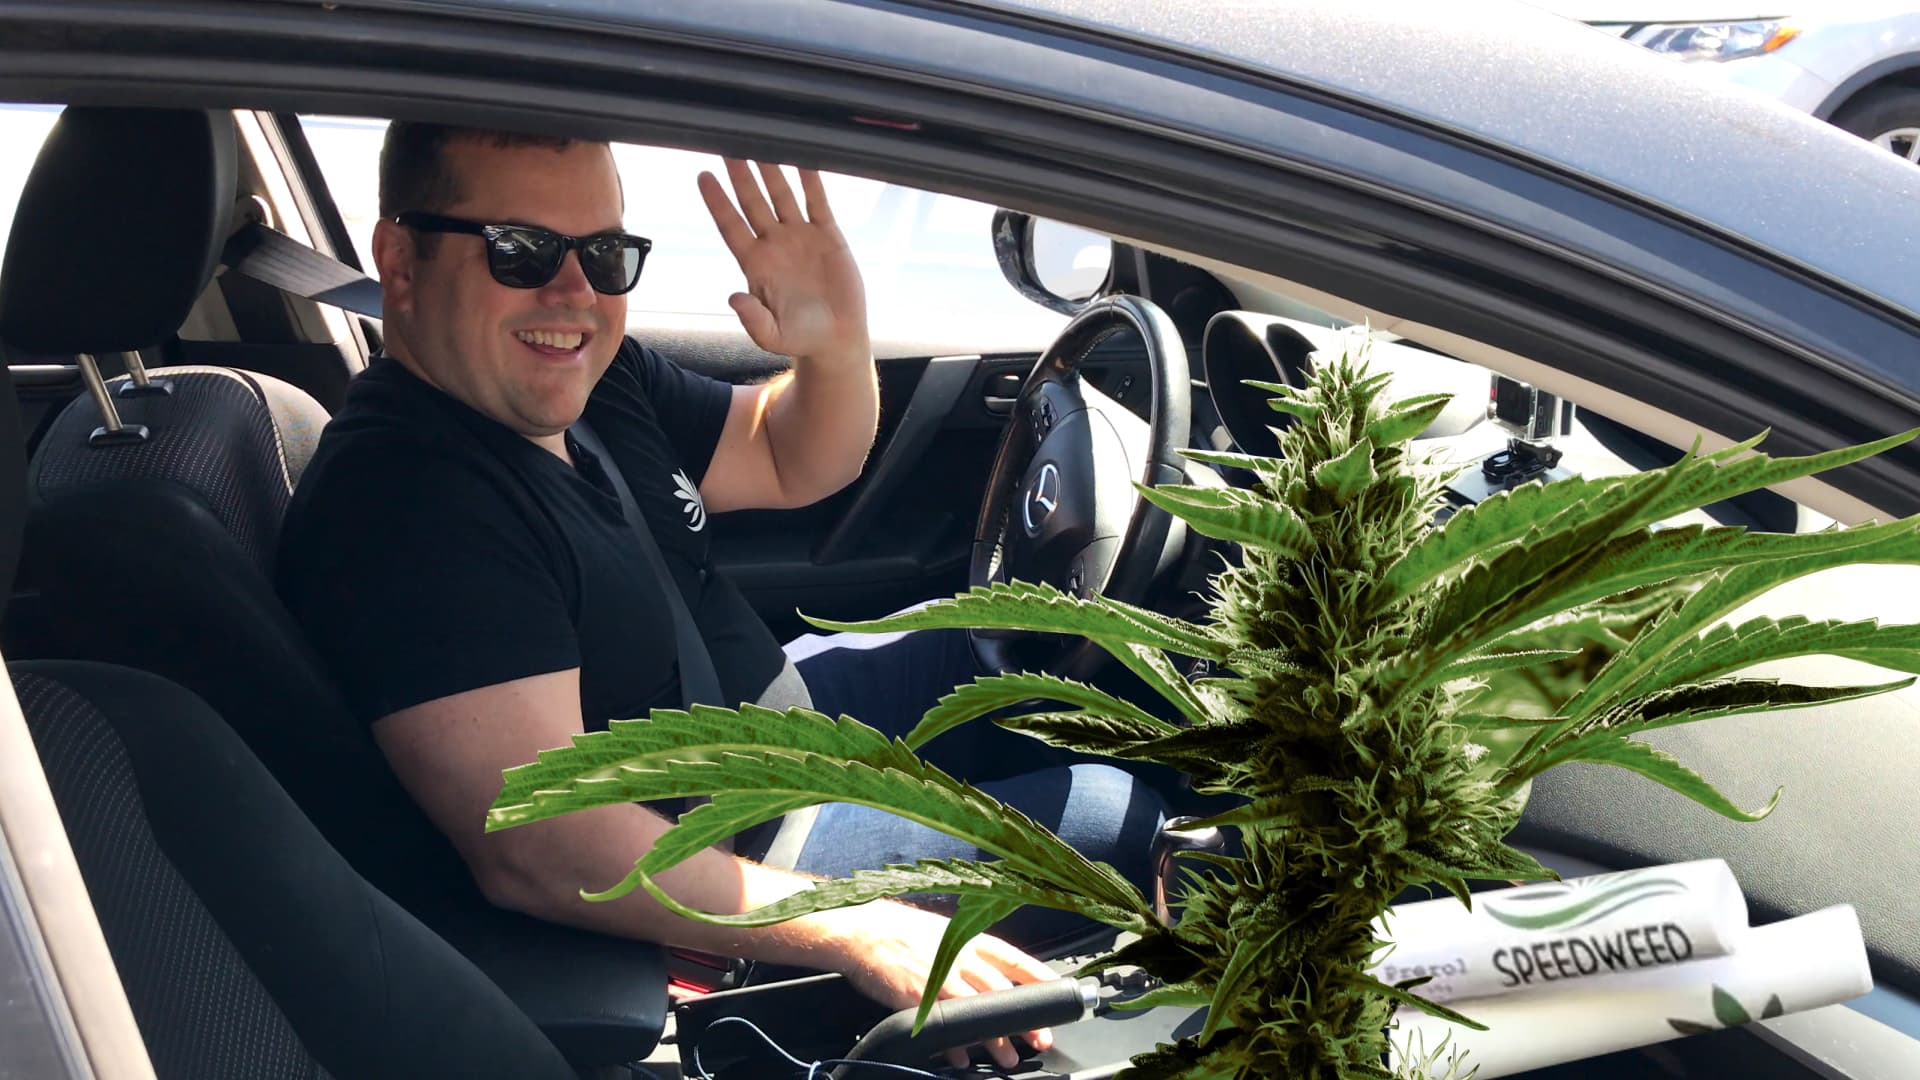 Here's what it's like to deliver weed in LA